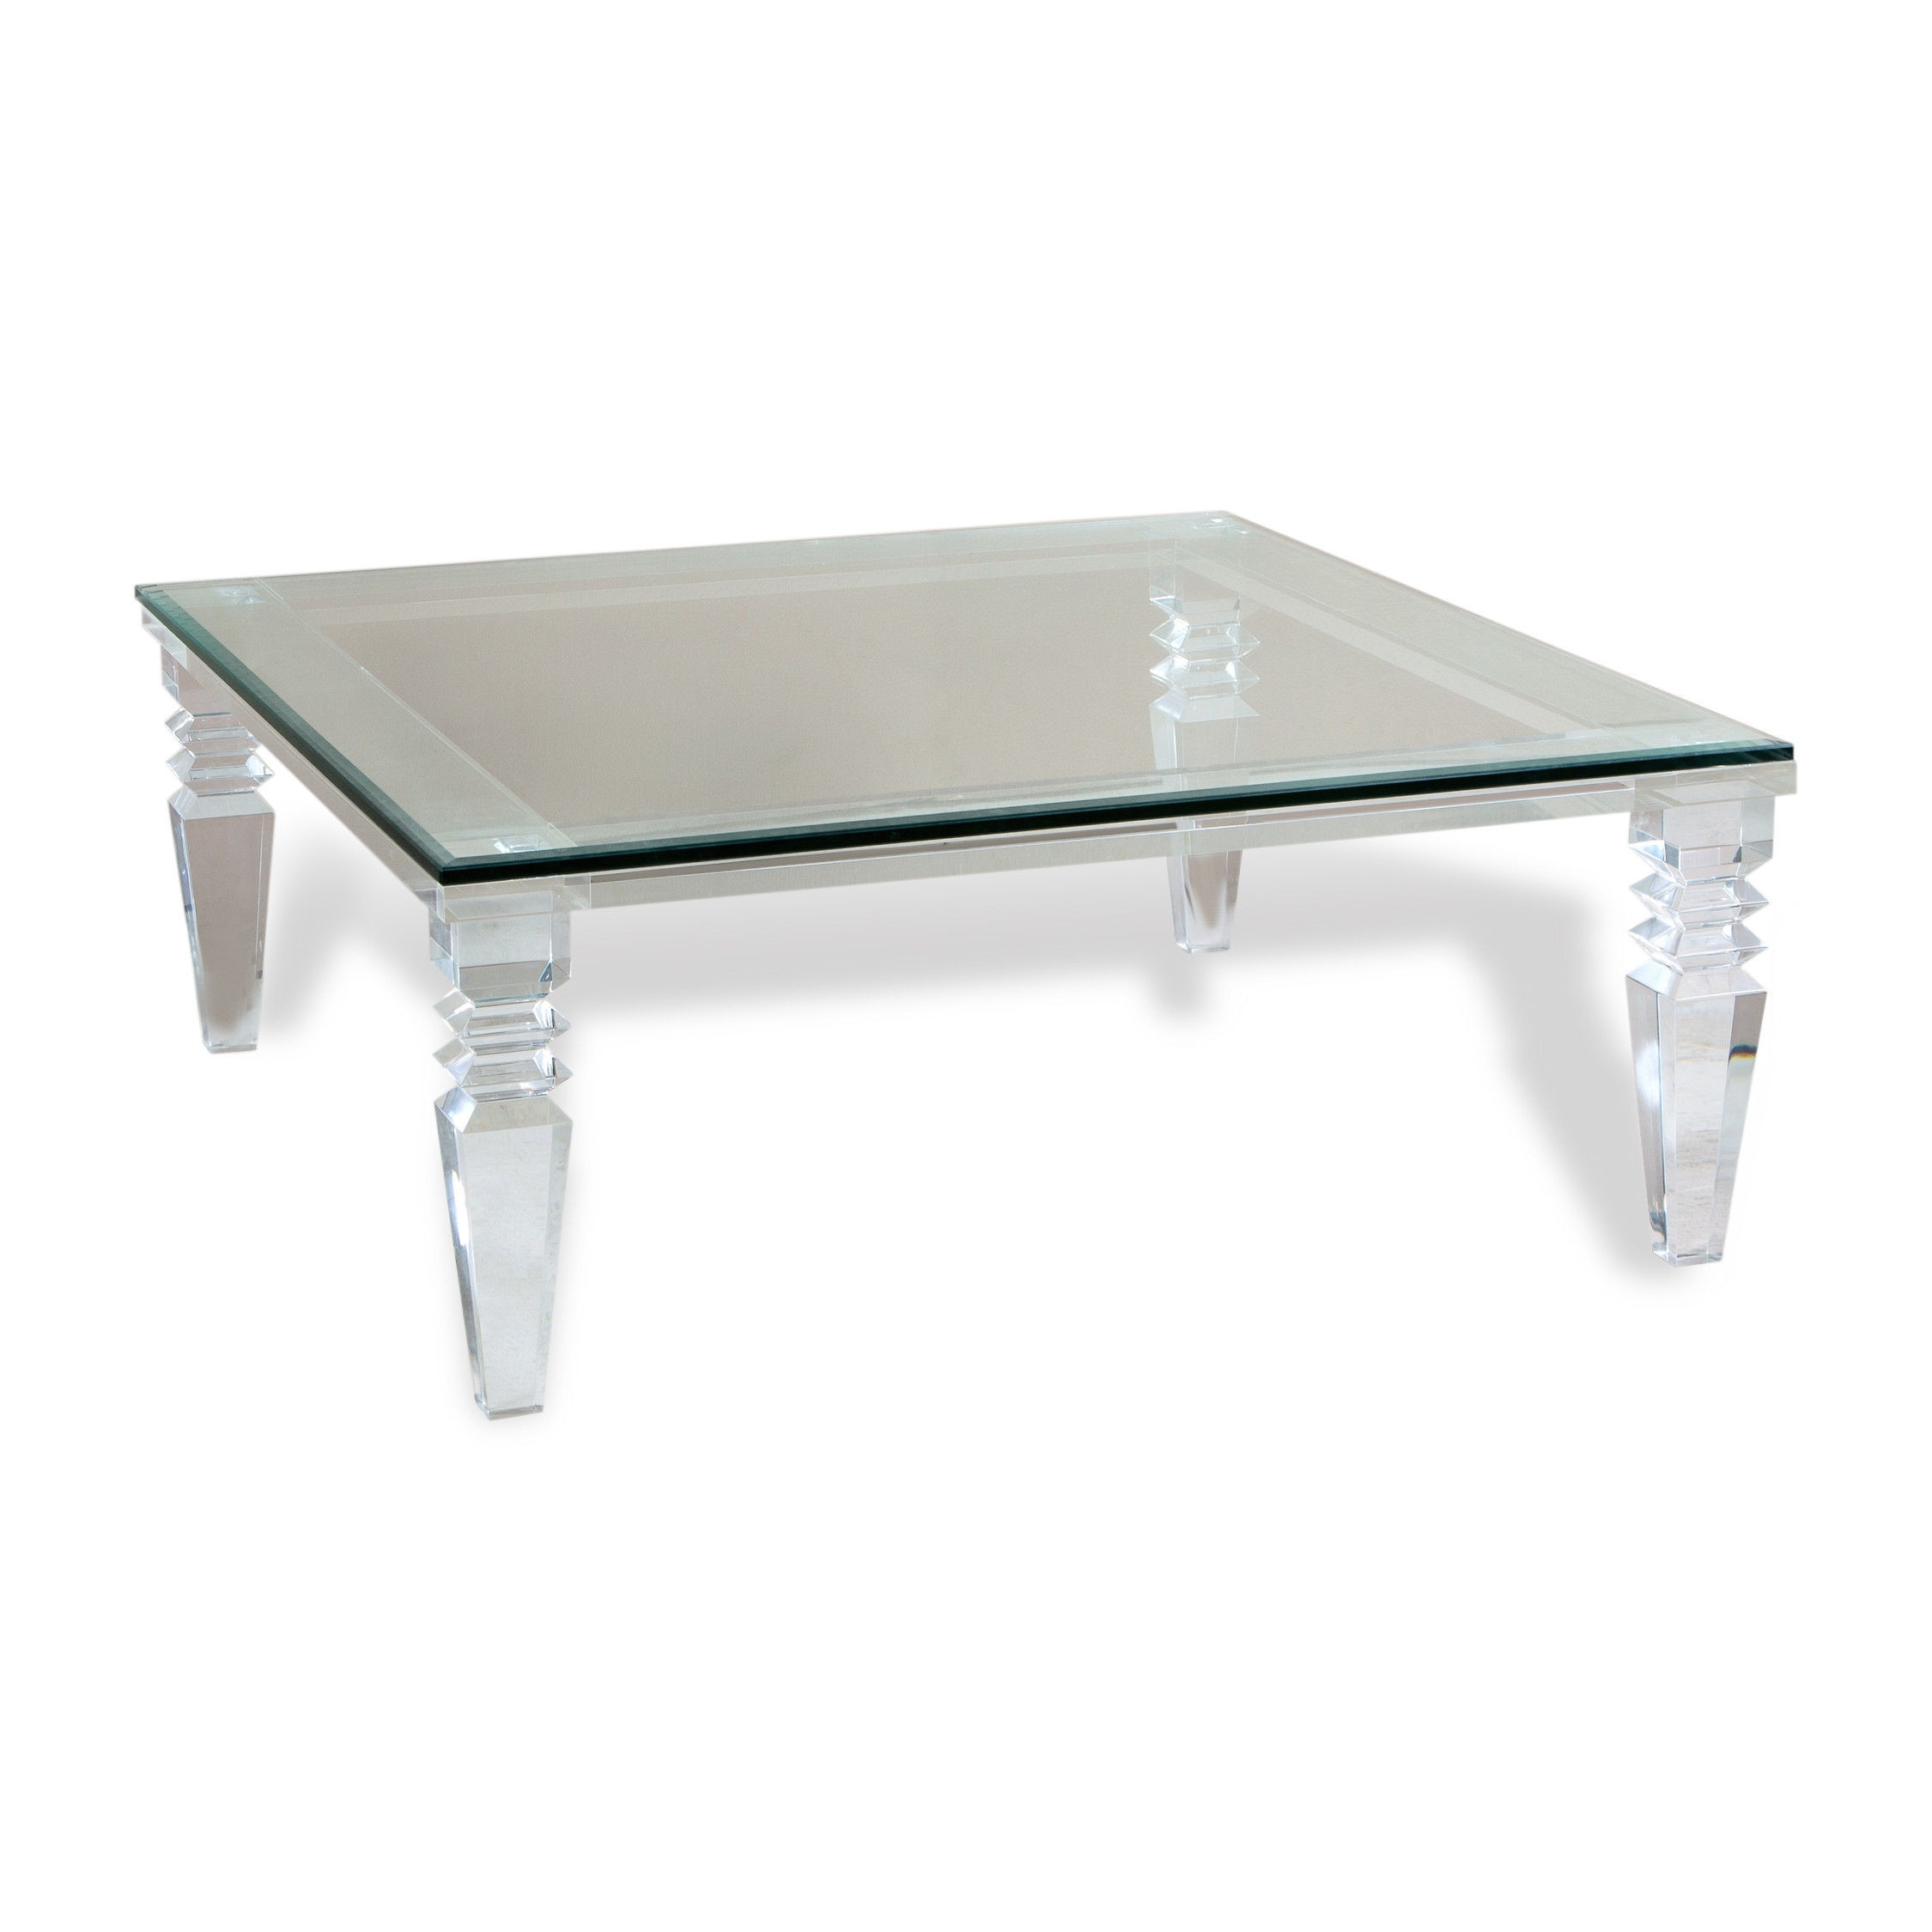 Acrylic Coffee Table For Sale Lovely Furniture Clear Glass Coffee intended for Peekaboo Acrylic Coffee Tables (Image 7 of 30)